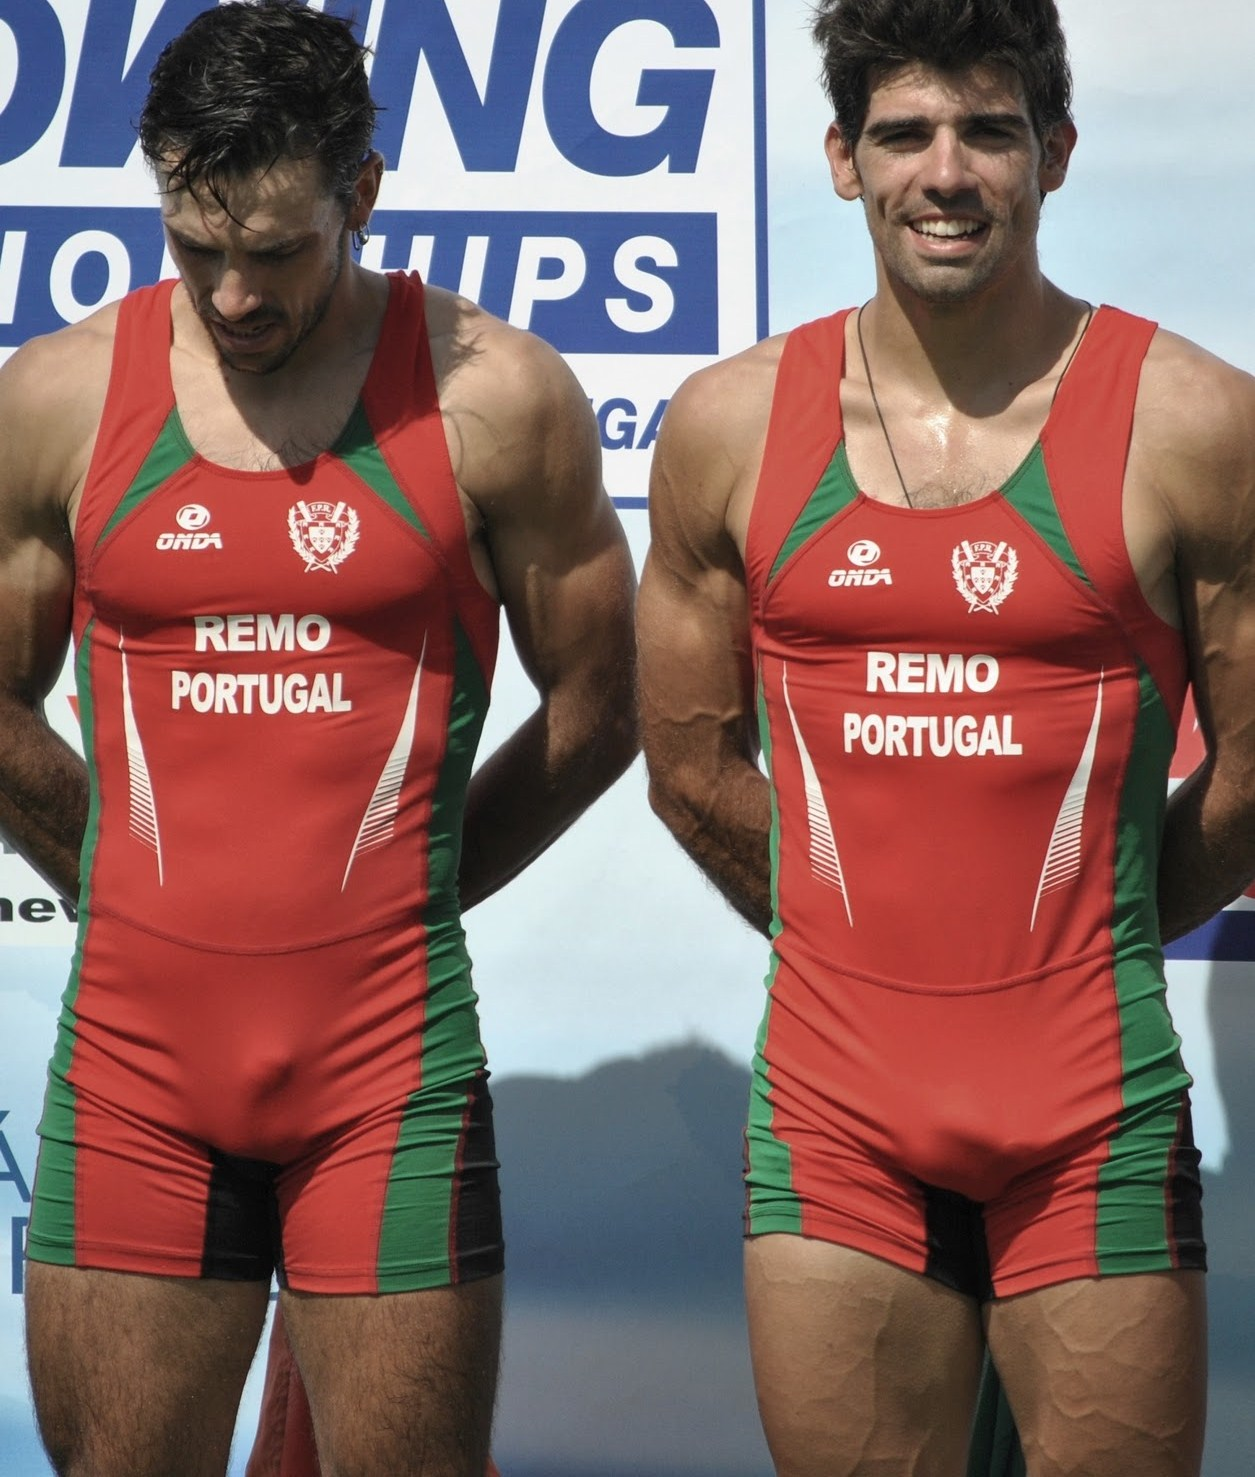 Mens Bulge Report http://www.athletesexposed.com/2011/01/08/hot-portugese-rowers-bulges/